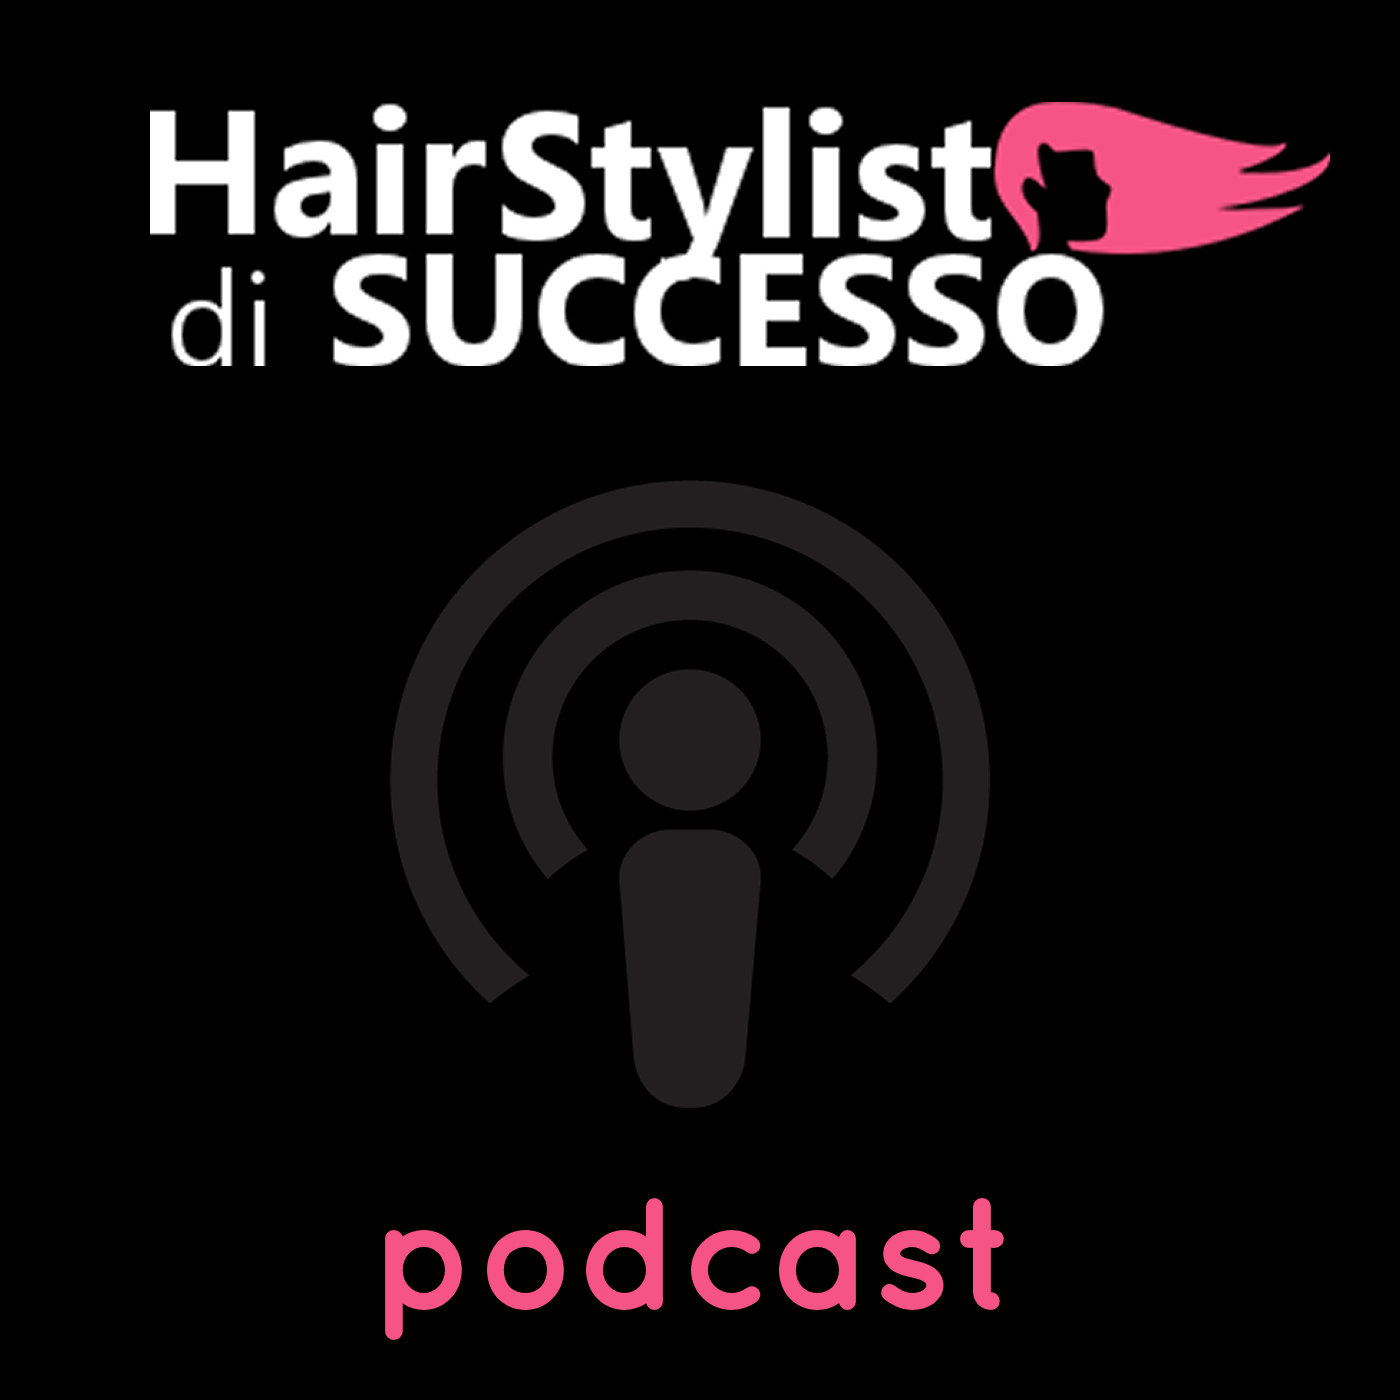 Hair Stylist di Successo Podcast